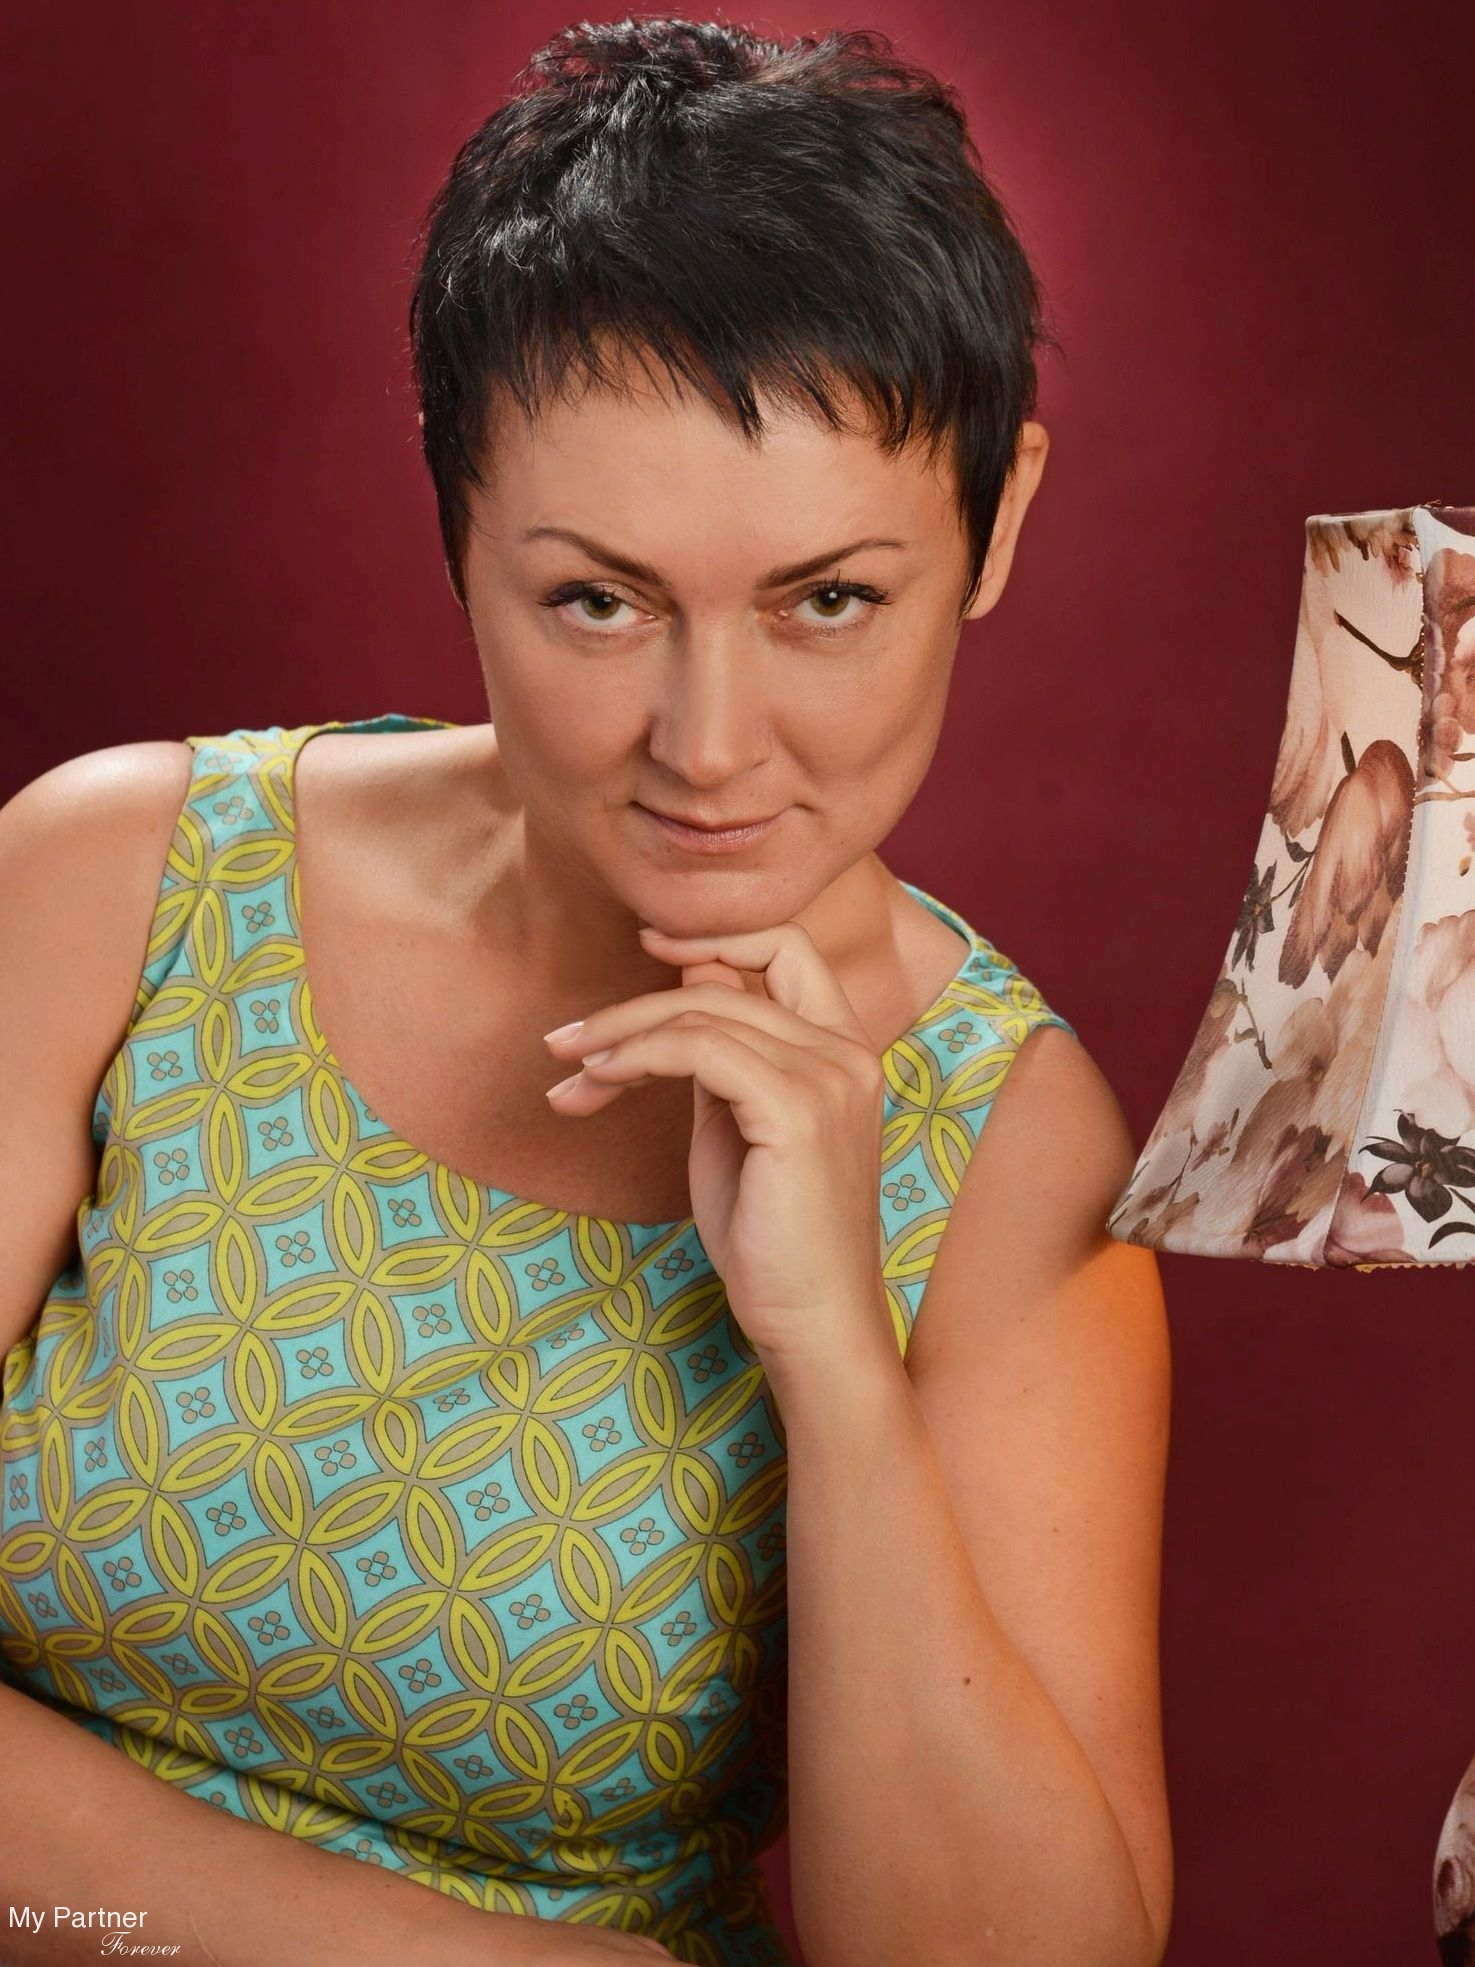 barnaul single women Russian women from barnaul - browse 1000s of russian dating profiles for free at russiancupidcom by joining today - page 5.